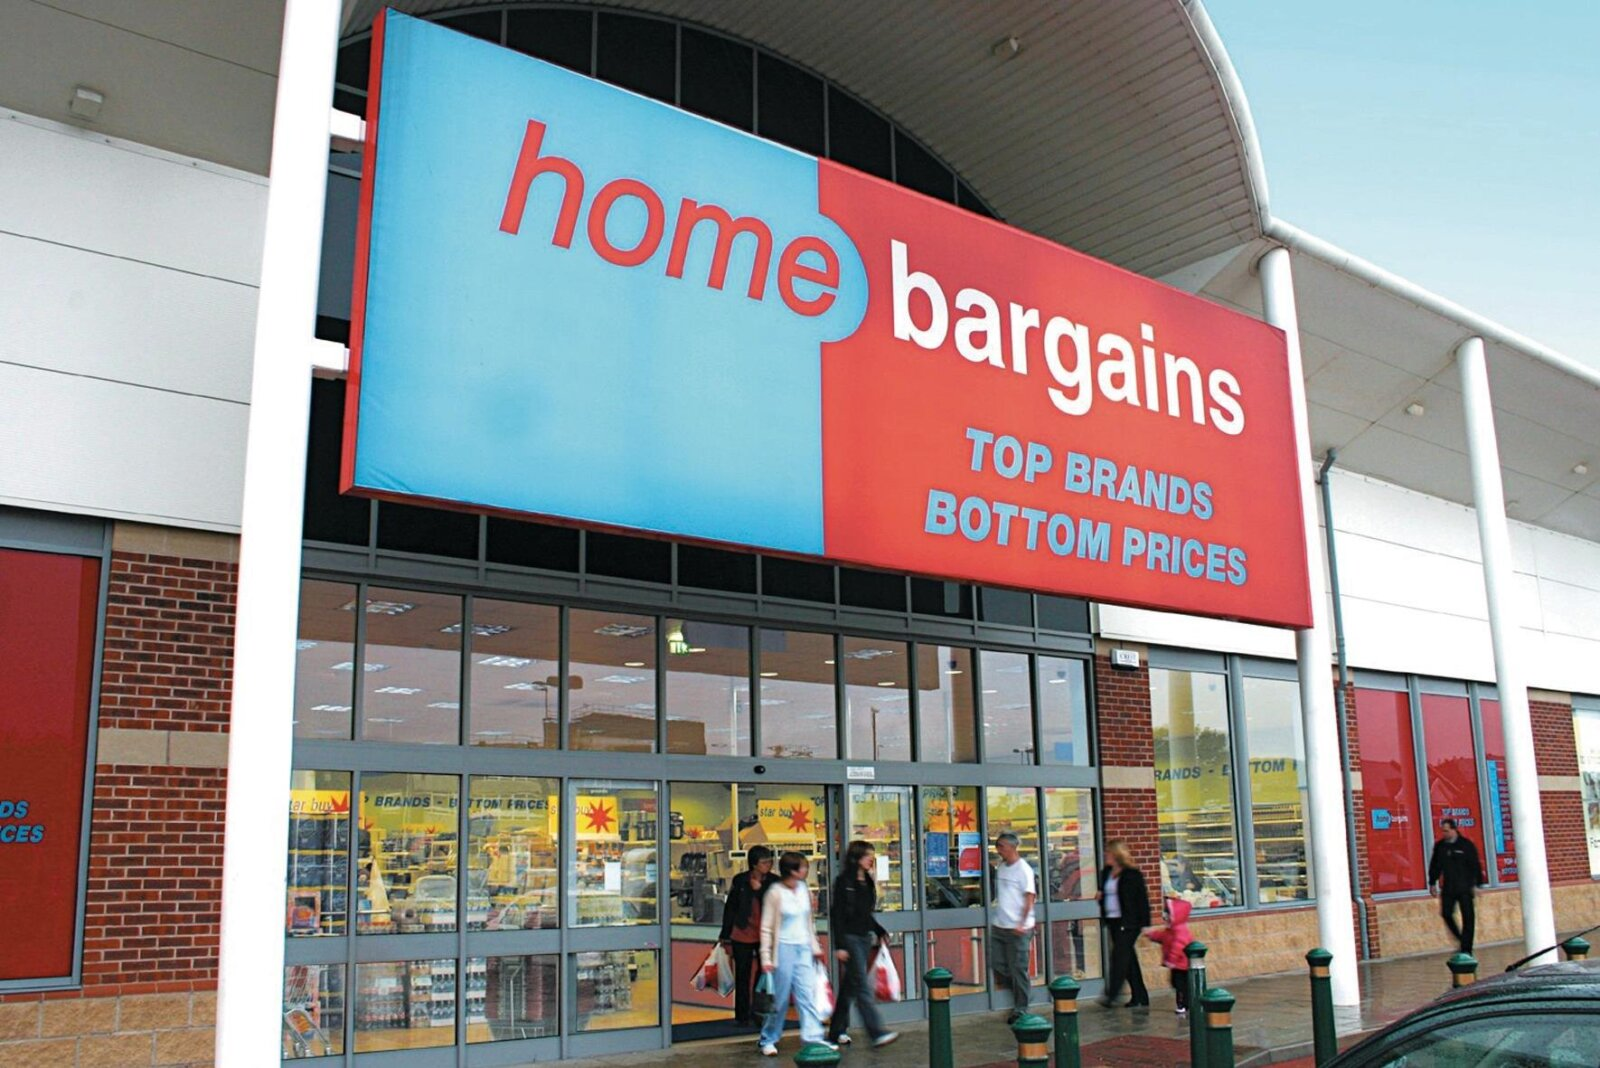 Home Bargains is giving out £100 vouchers for people to spend in store, The Manc